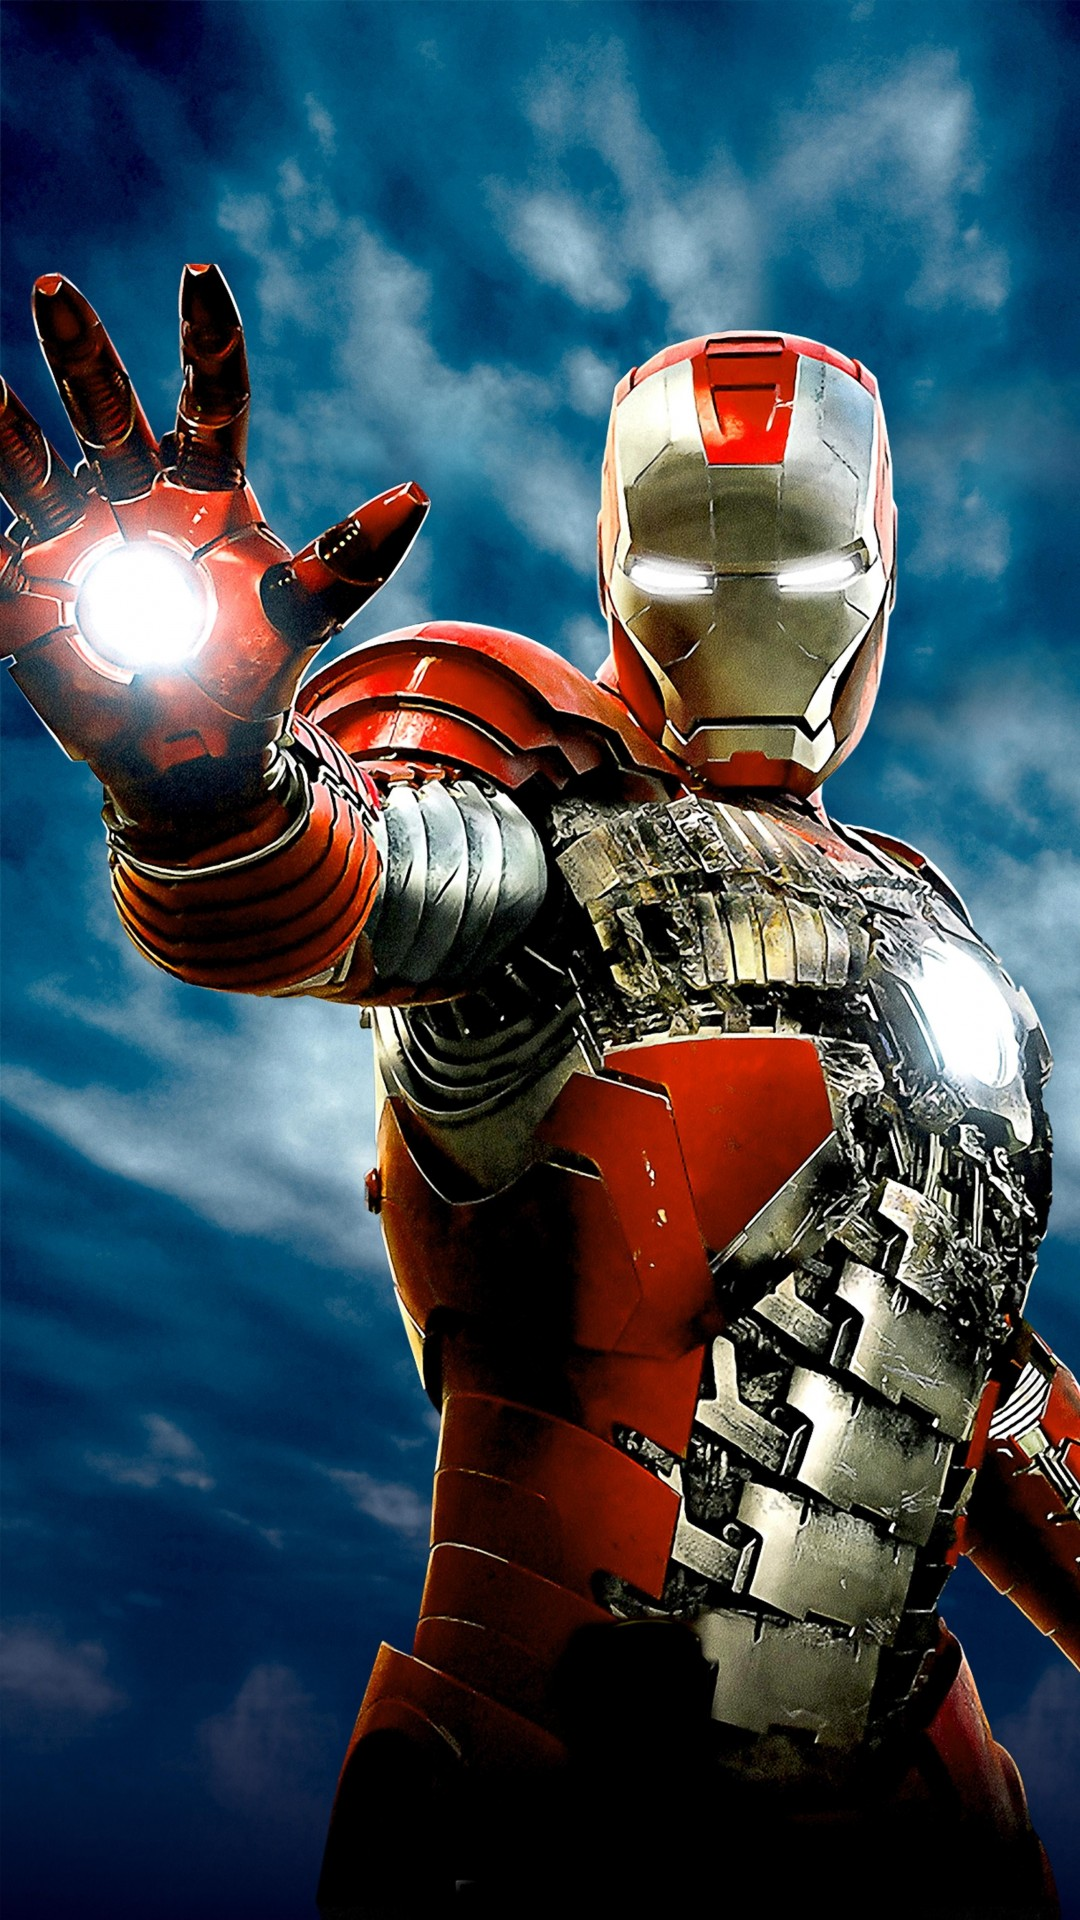 Free Download 10 Hd Iron Man Iphone 6 Wallpapers The Nology